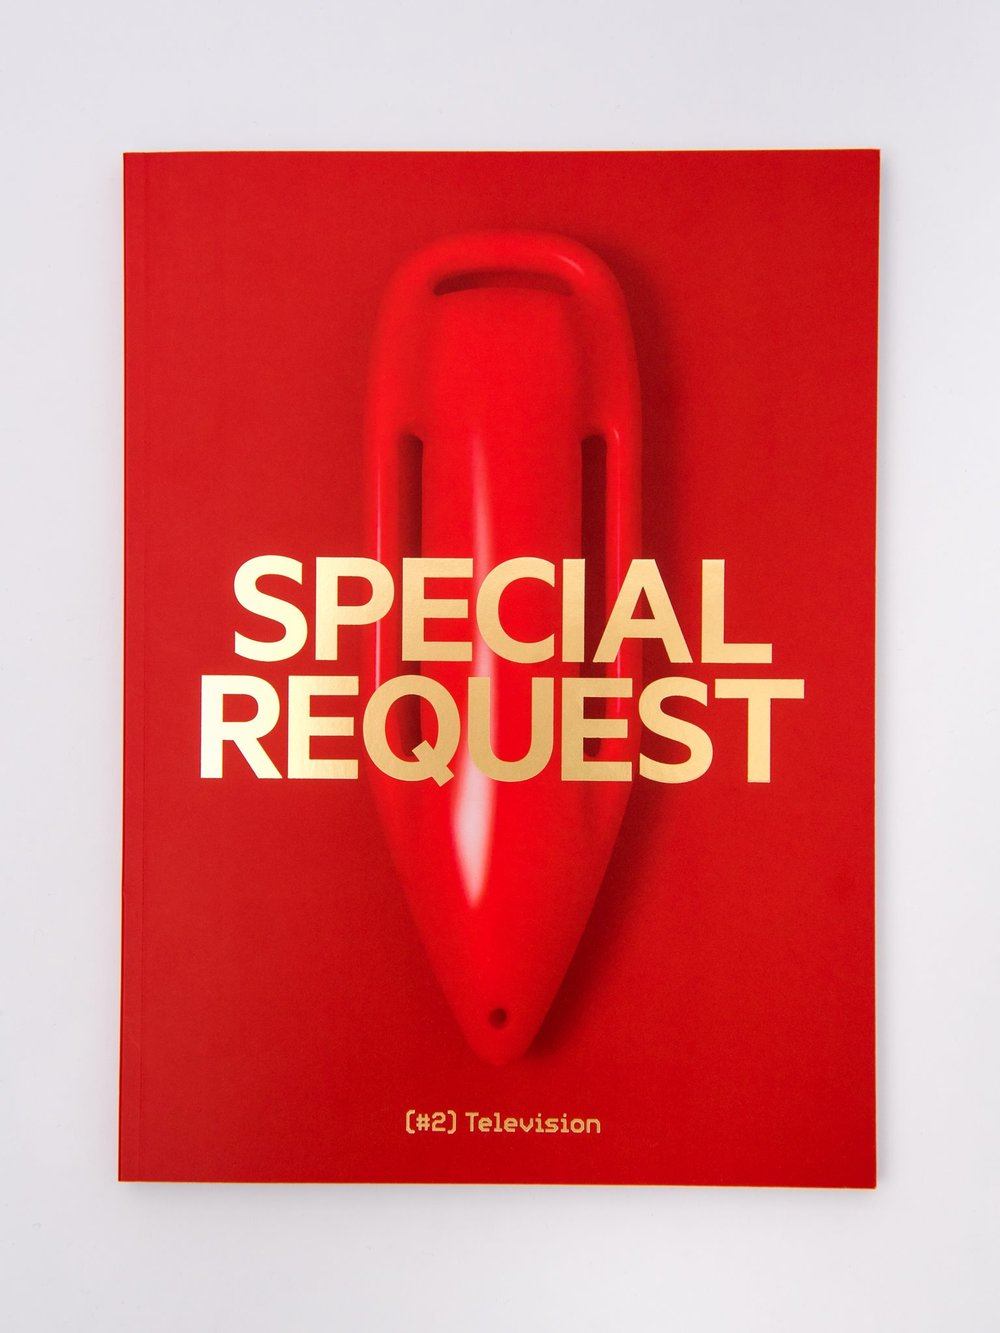 The cover of Special Request, issue 2